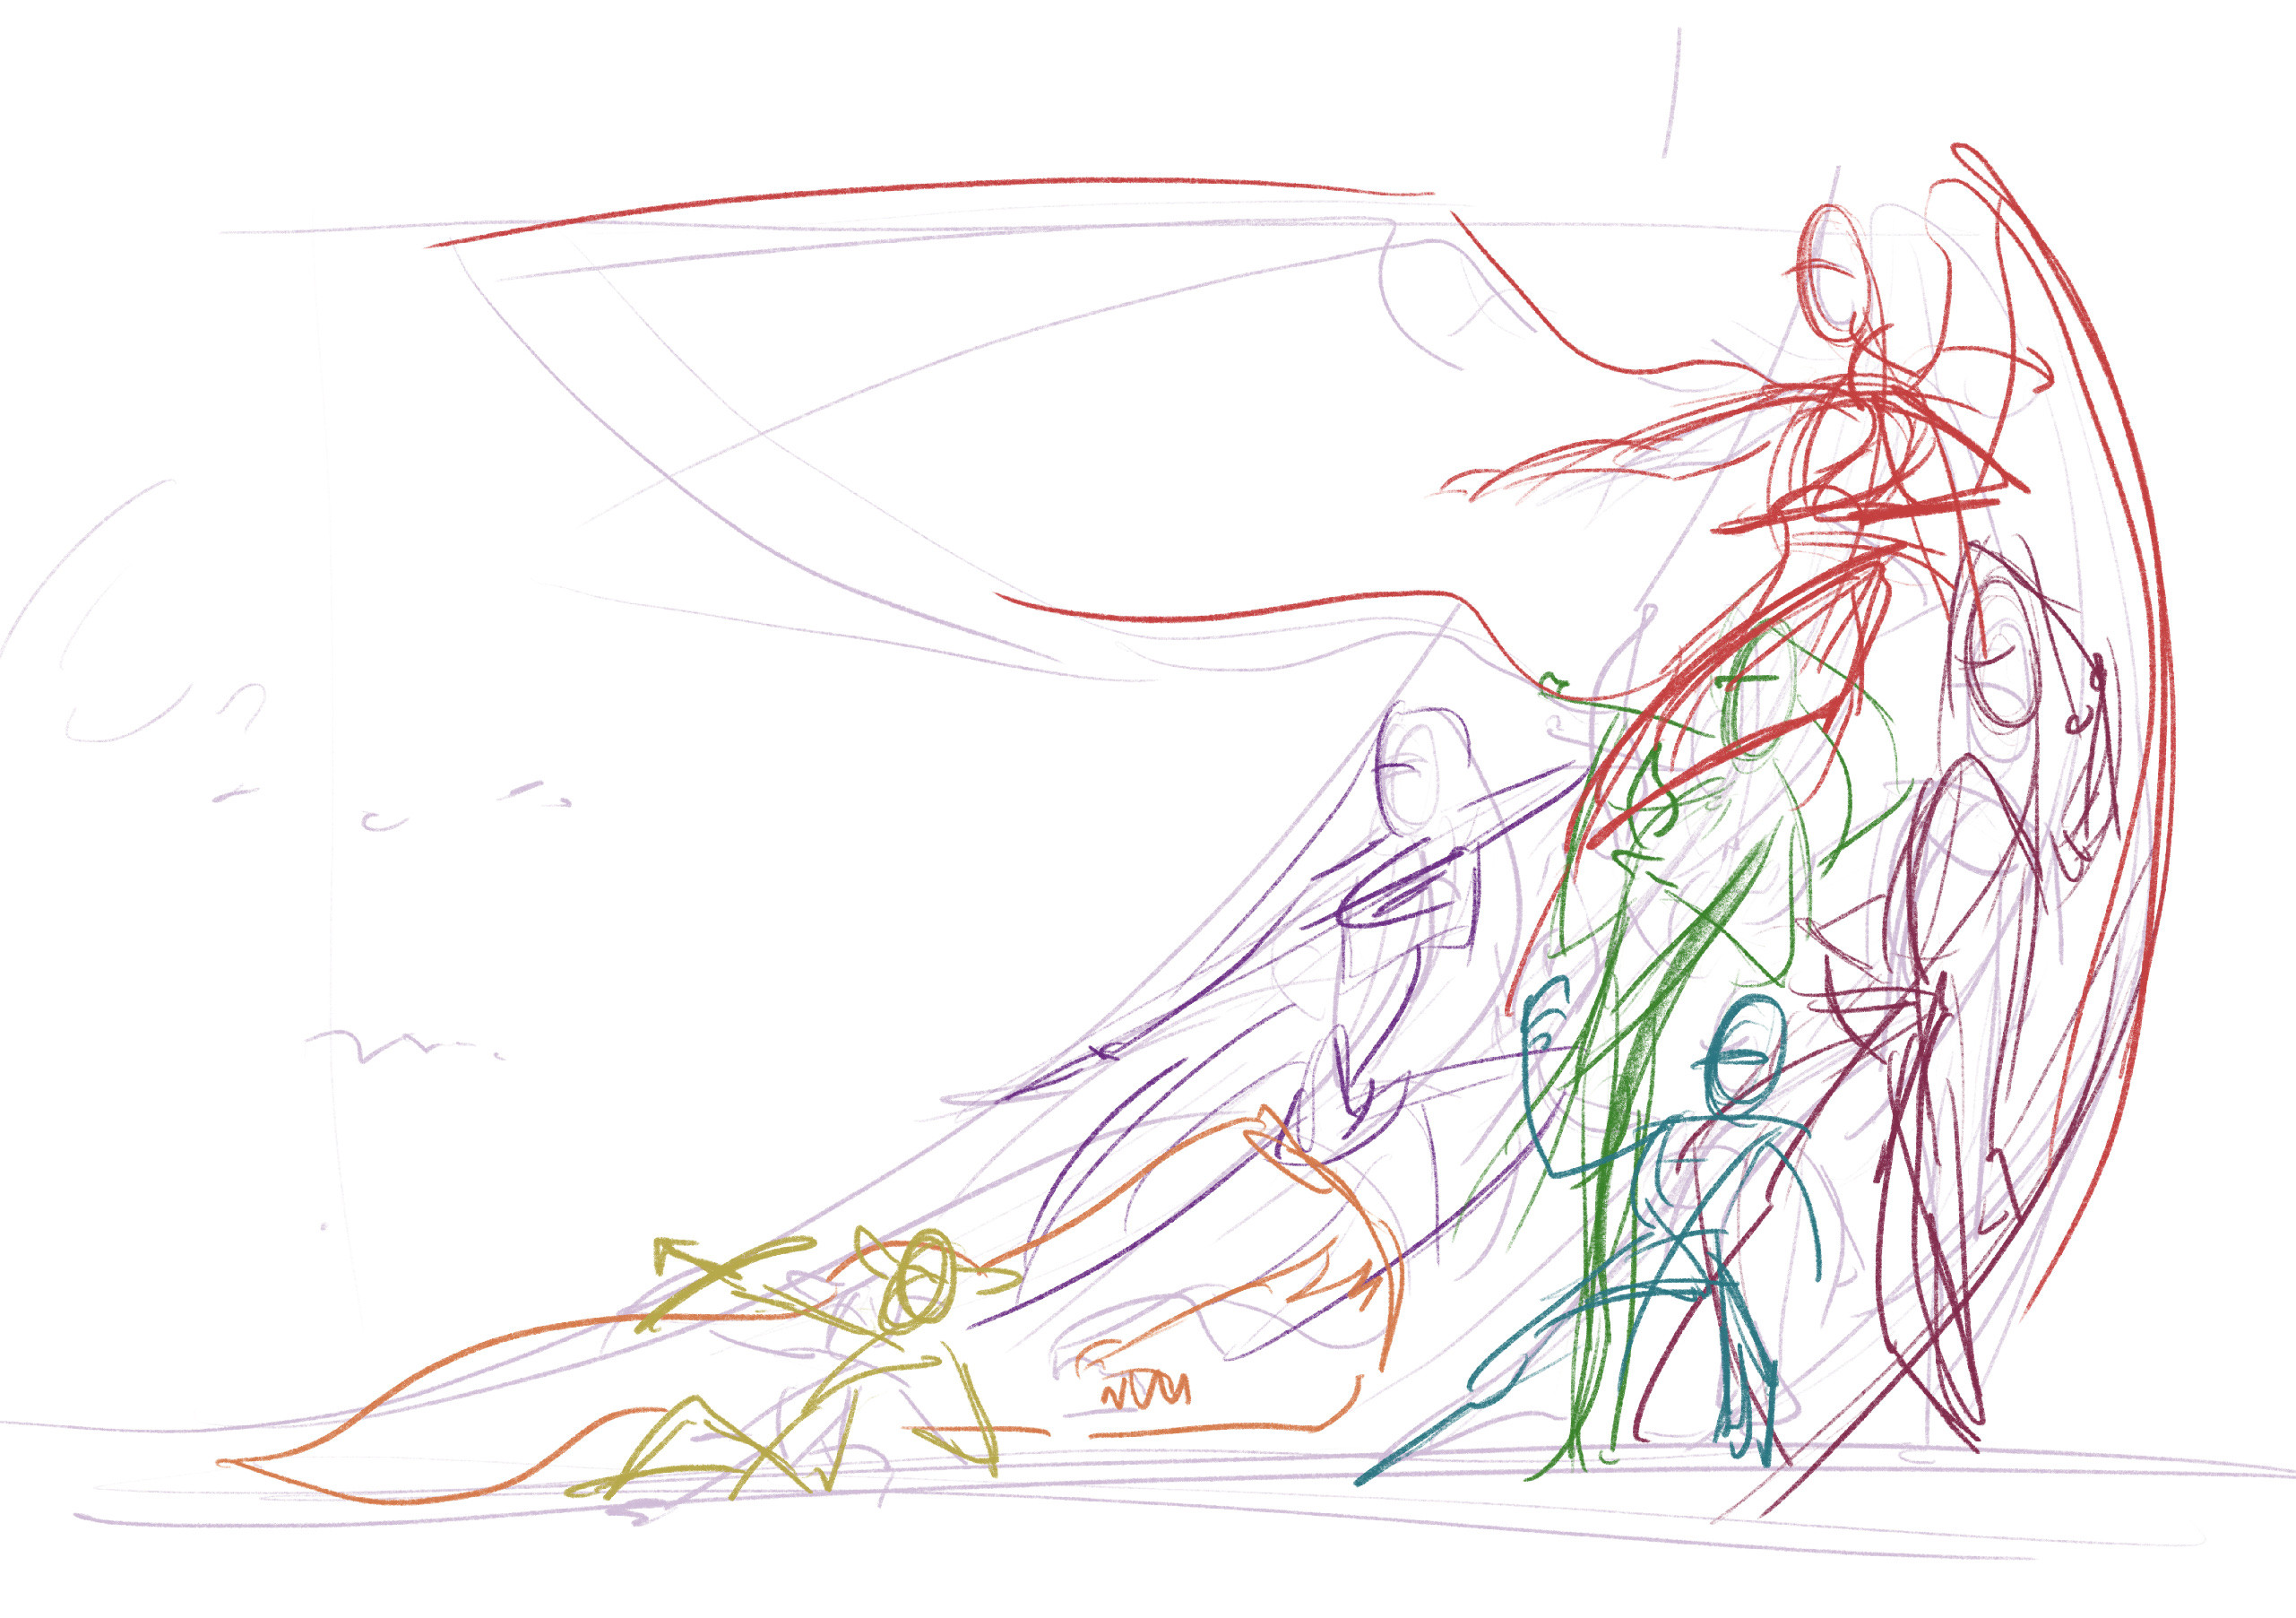 Initial composition sketch for the piece